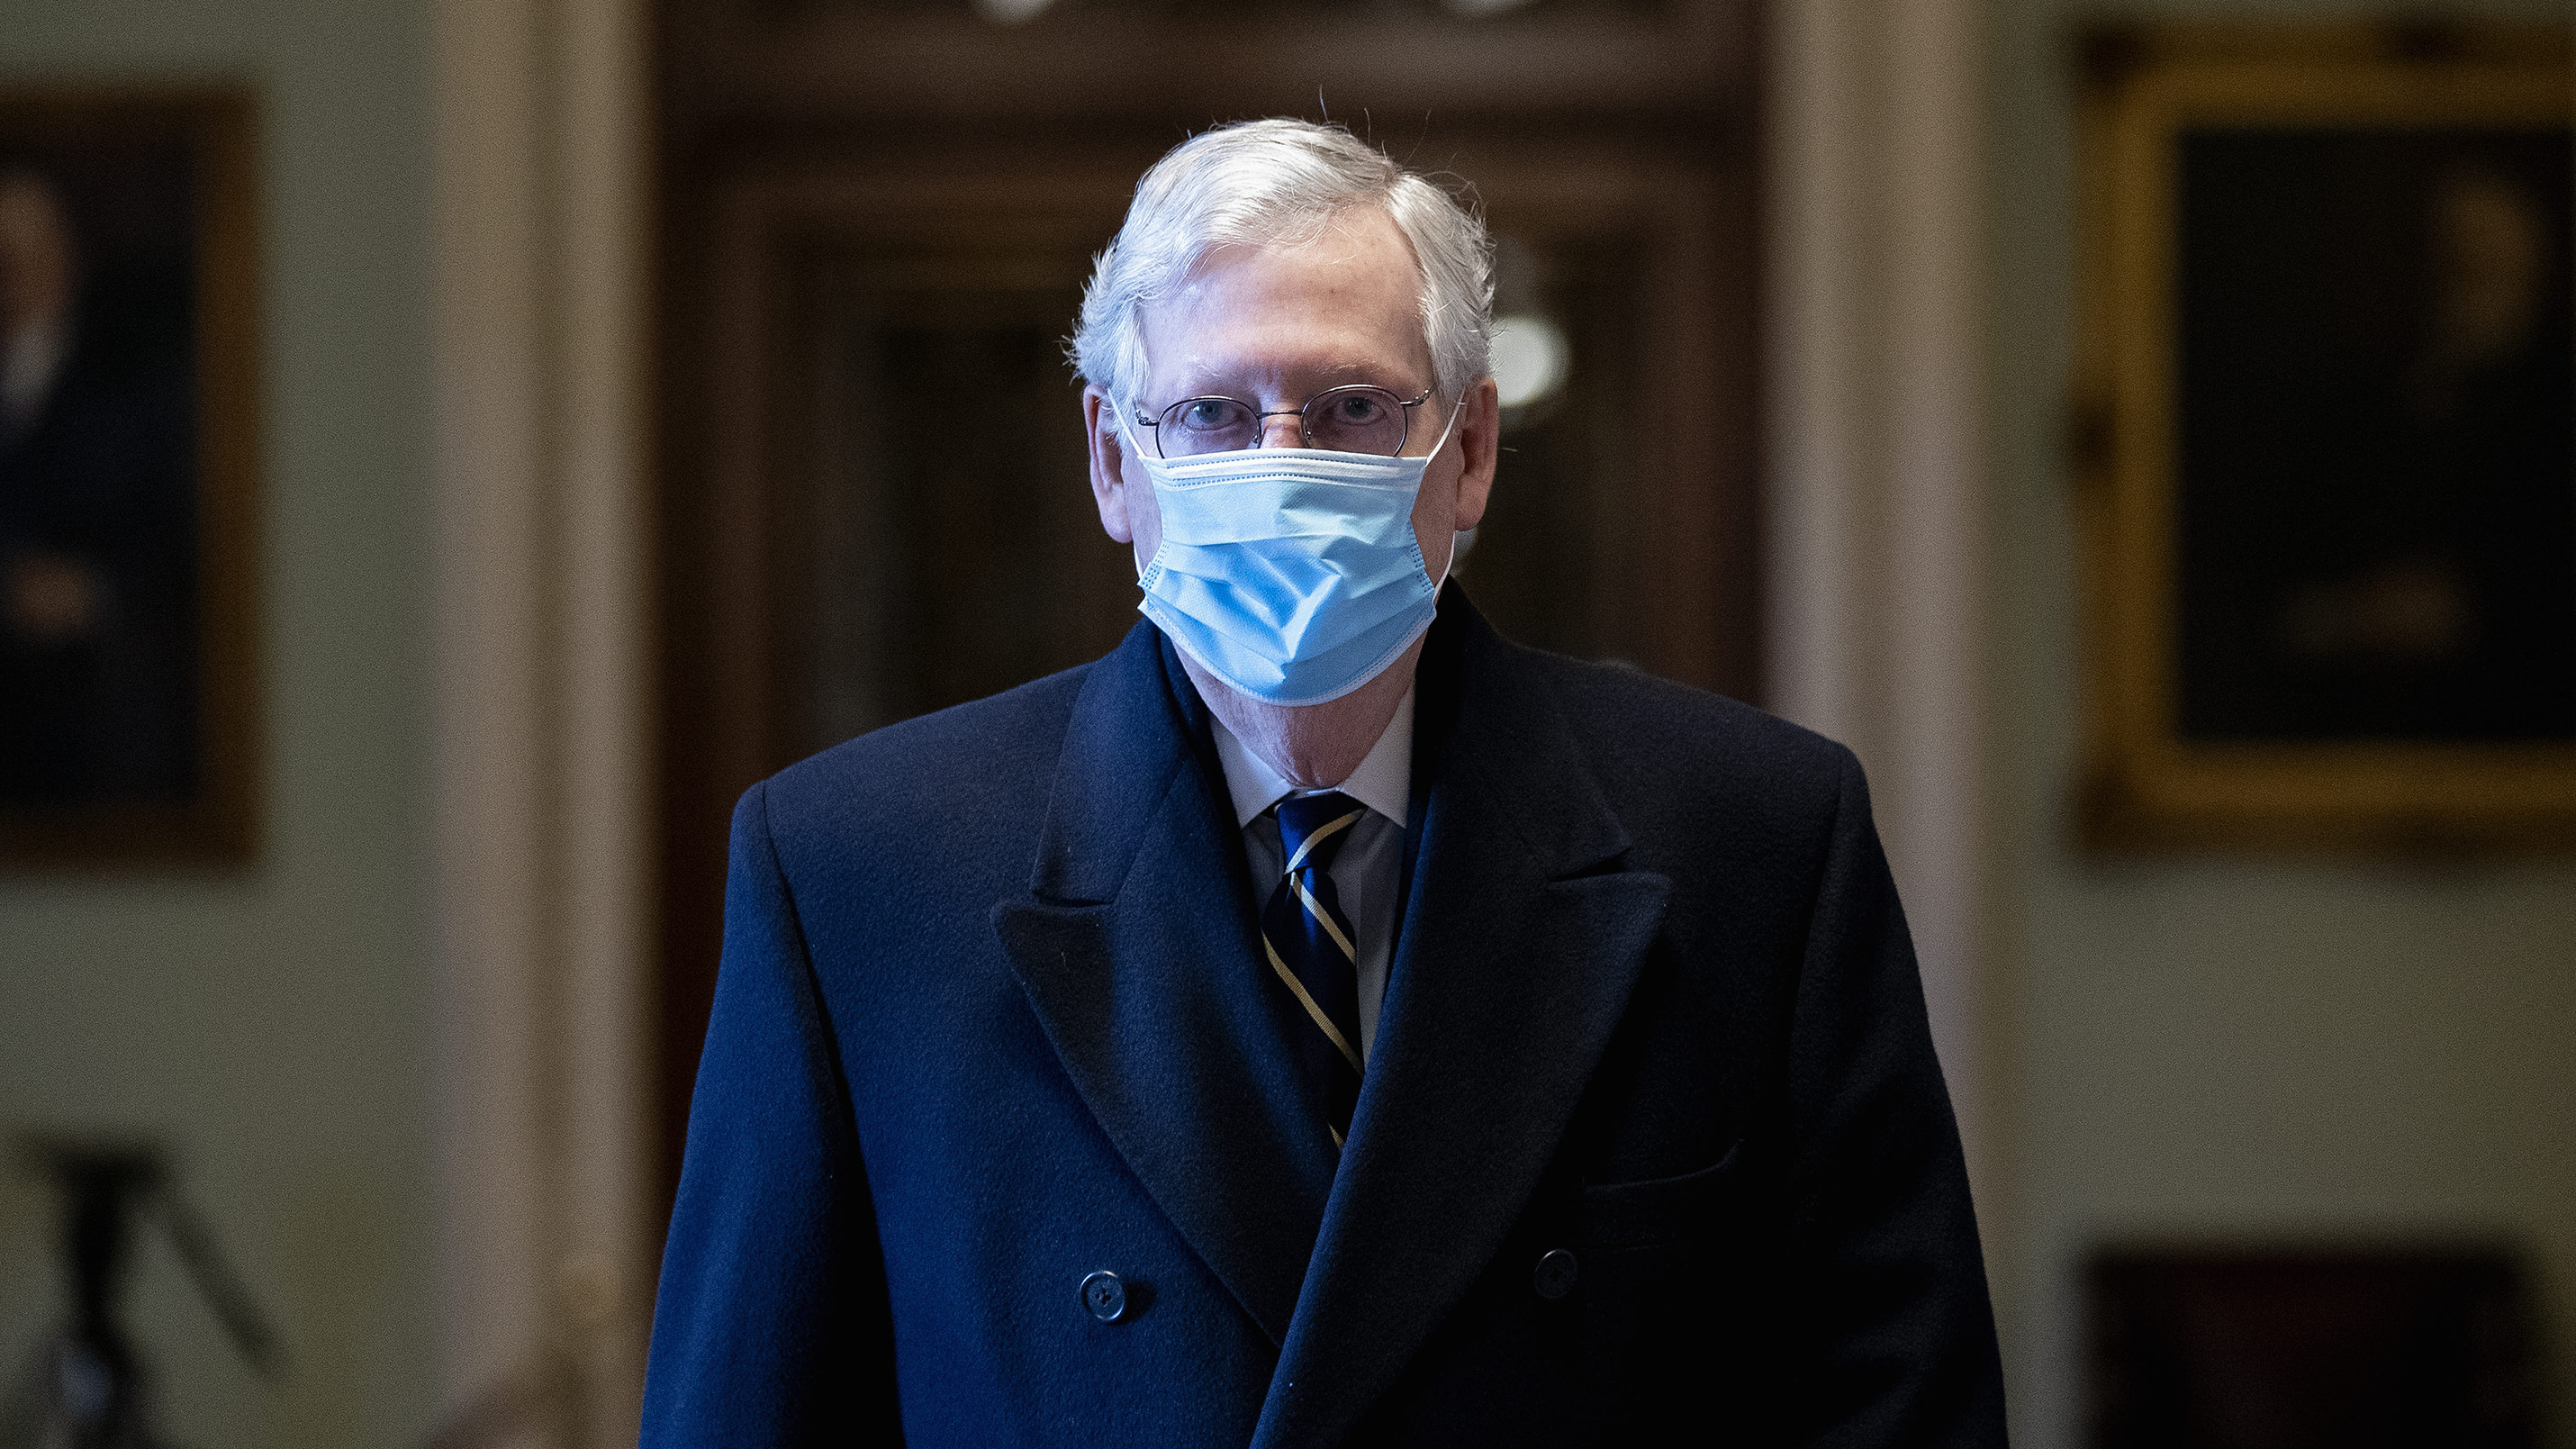 Senate Minority Leader Mitch McConnell arrives at the Capitol in Washington, DC, on Wednesday, February 10.